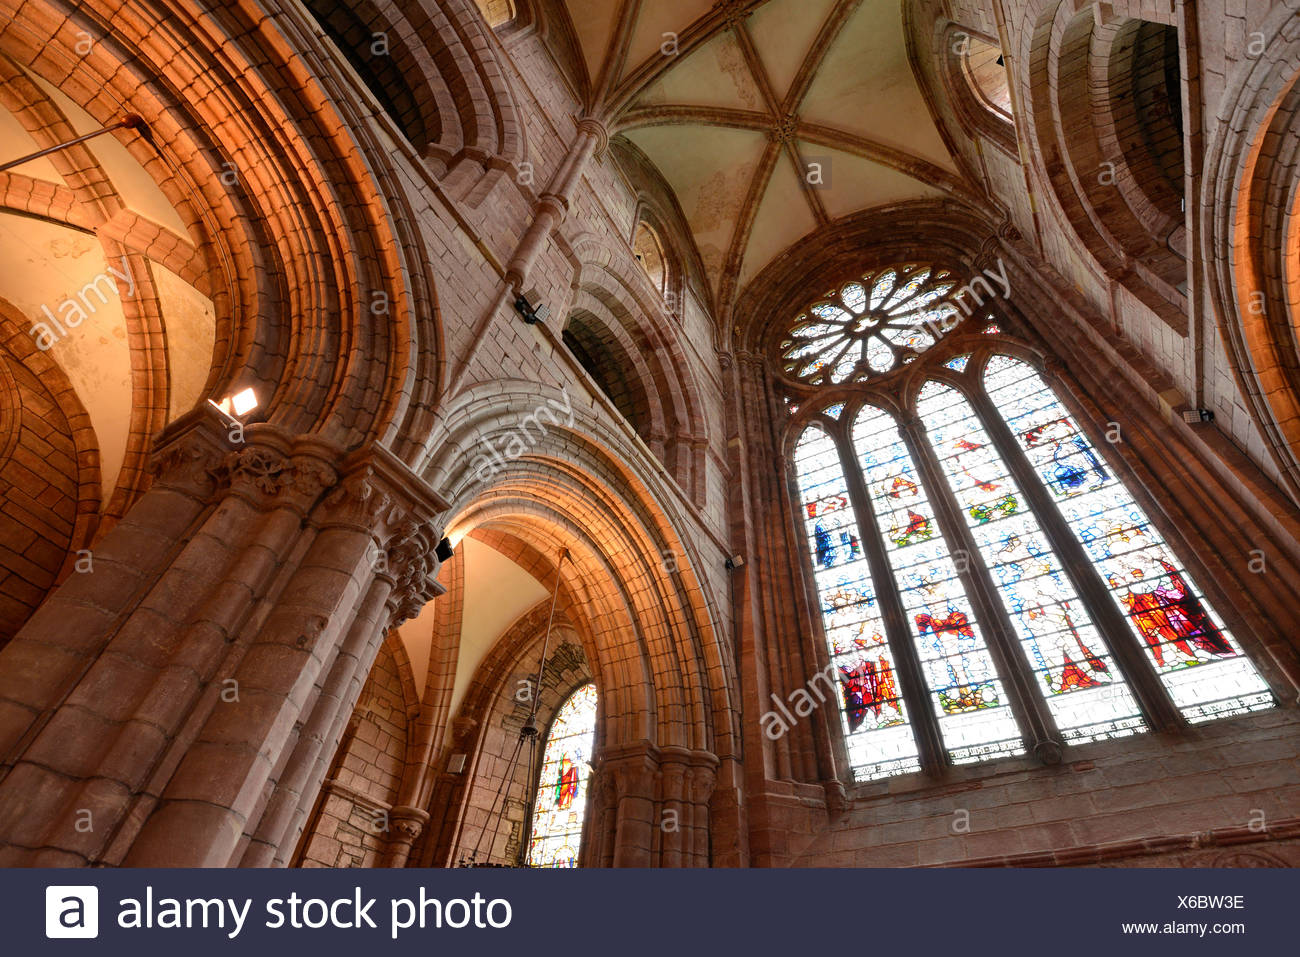 Interior view, large window with a glass mosaic, church window, and ceiling of St. Magnus Cathedral, Orkney Islands, Kirkwall - Stock Image